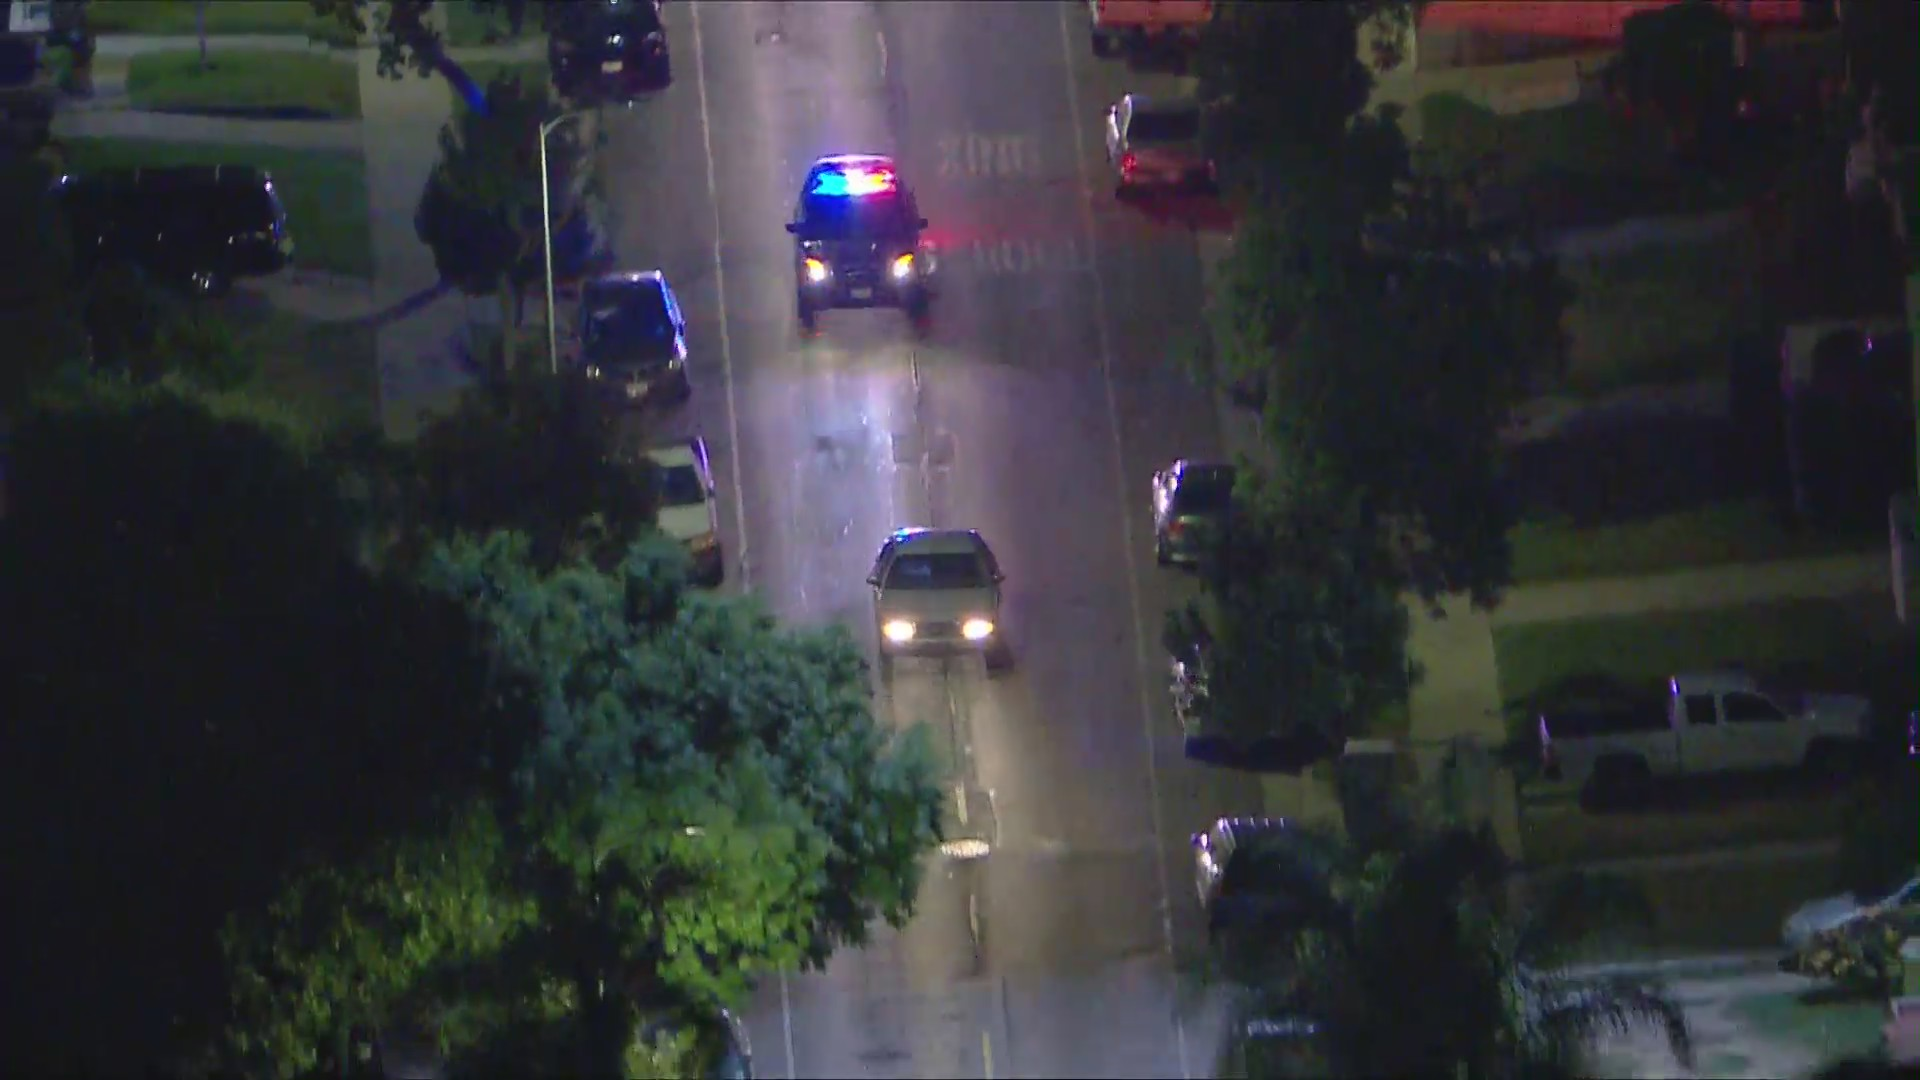 Police pursue a vehicle on June 2, 2020. (KTLA)